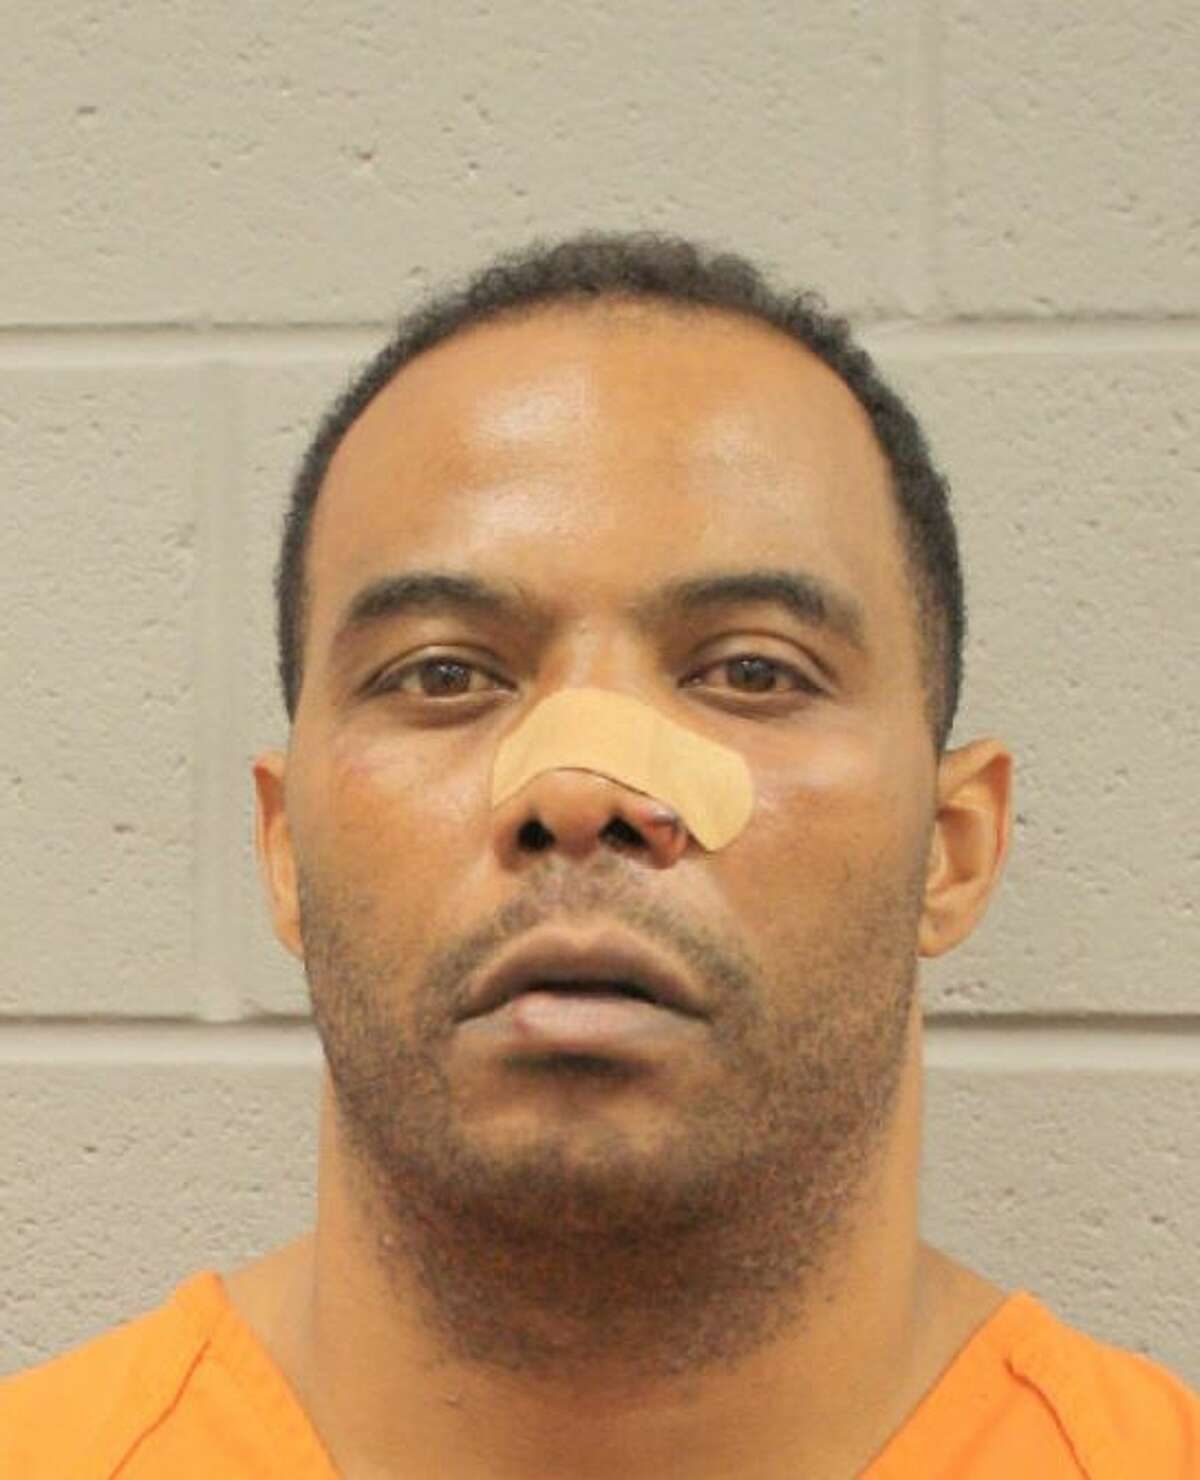 Derrick Hayes is accused of shooting his grandmother and little brother to death, according to police.